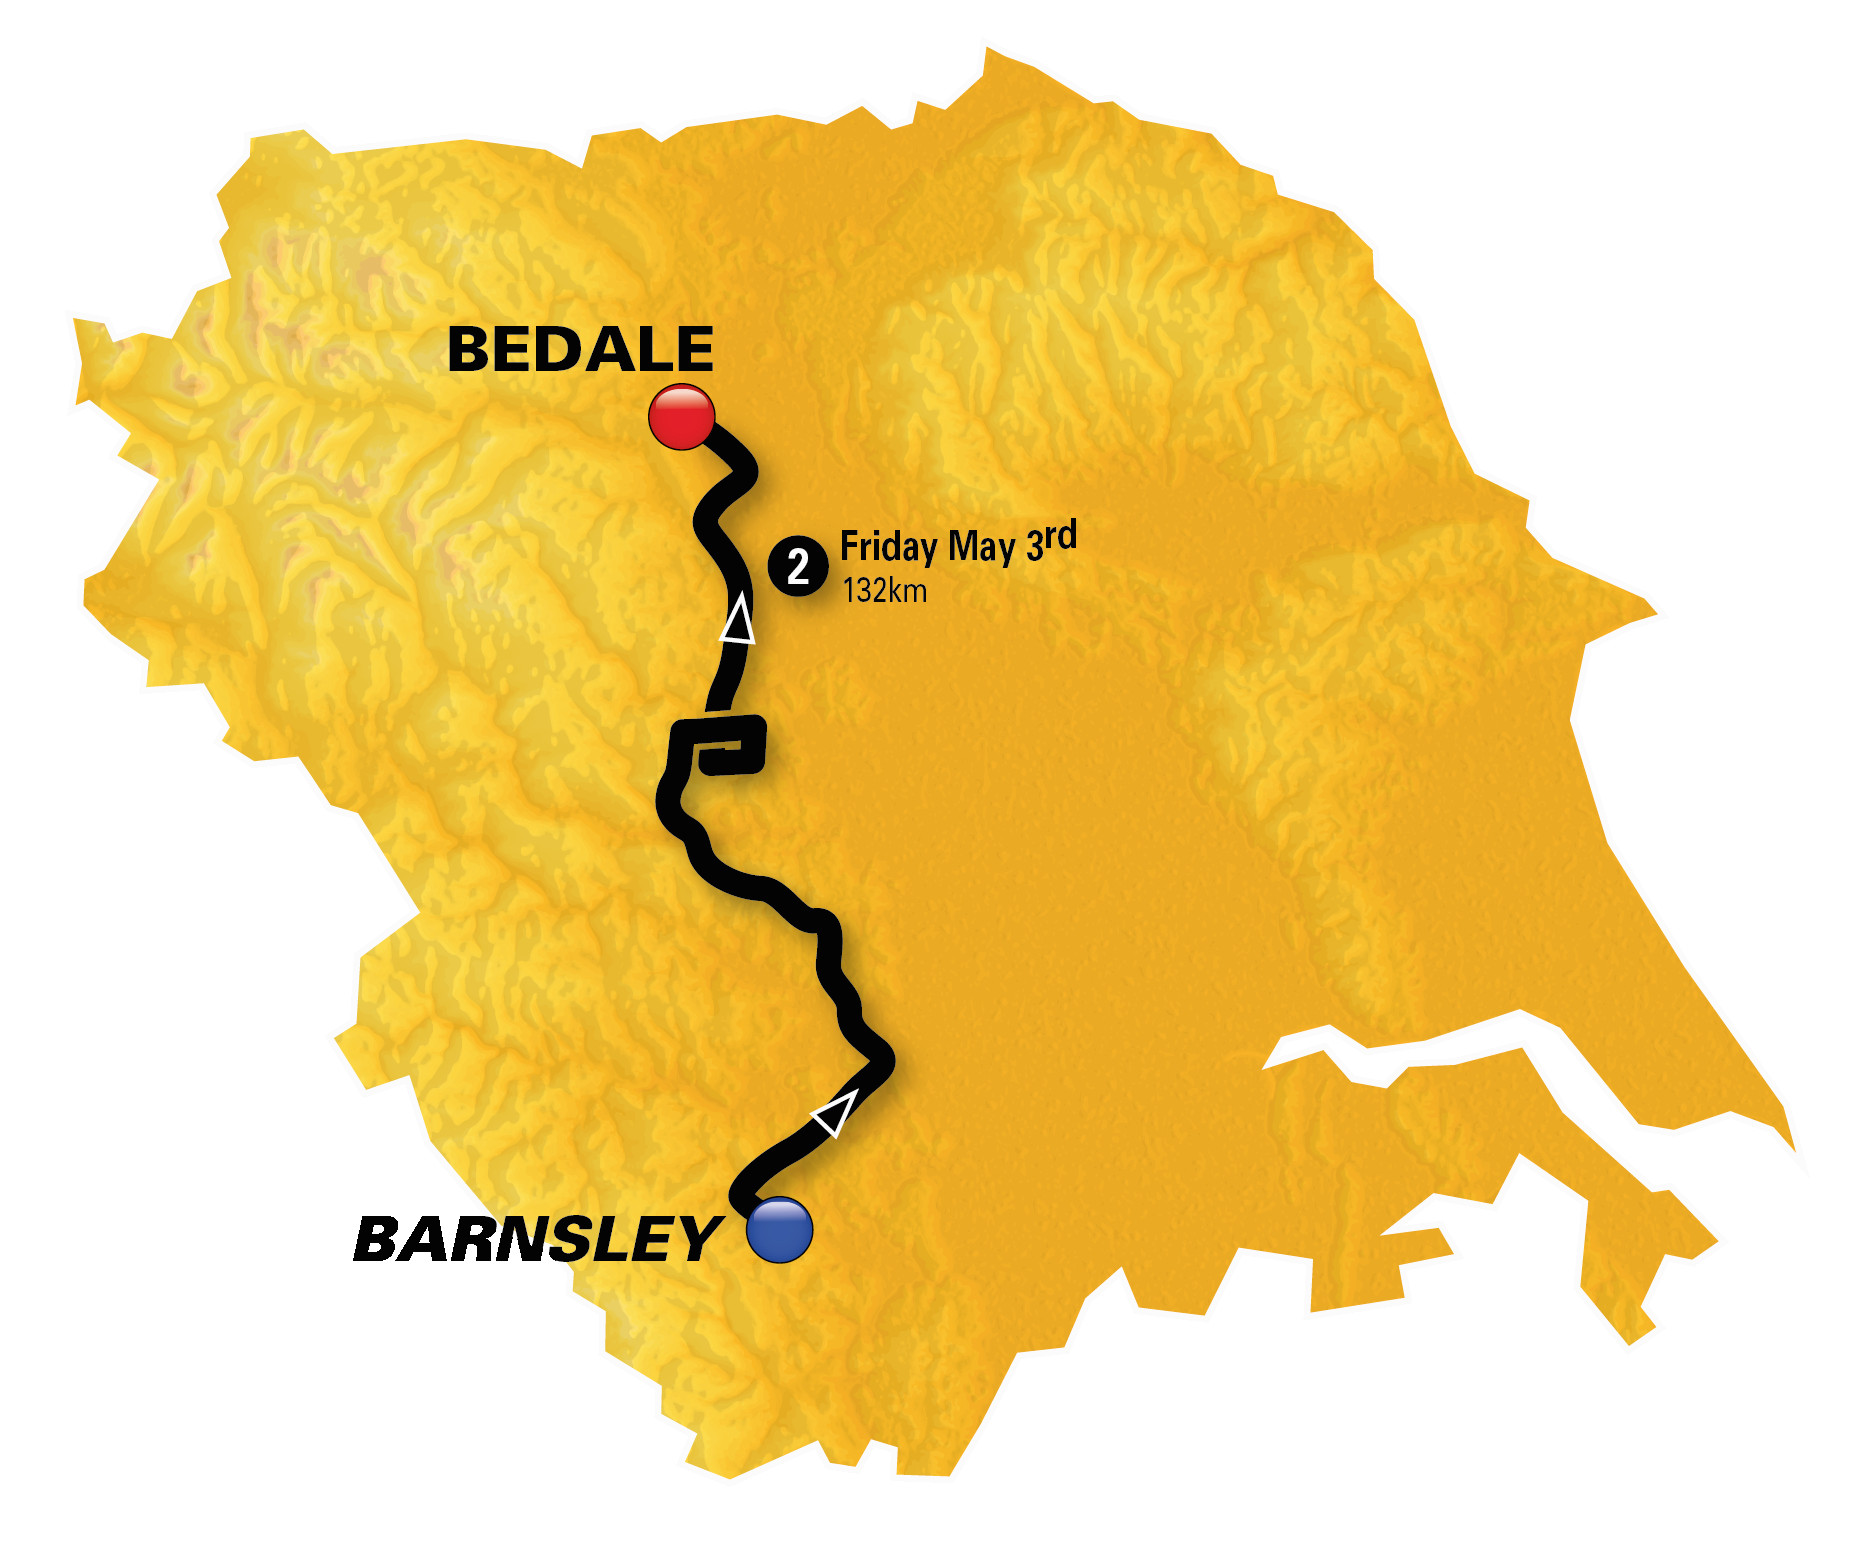 stage 2 barnsley to bedale 132km tour de yorkshire 2